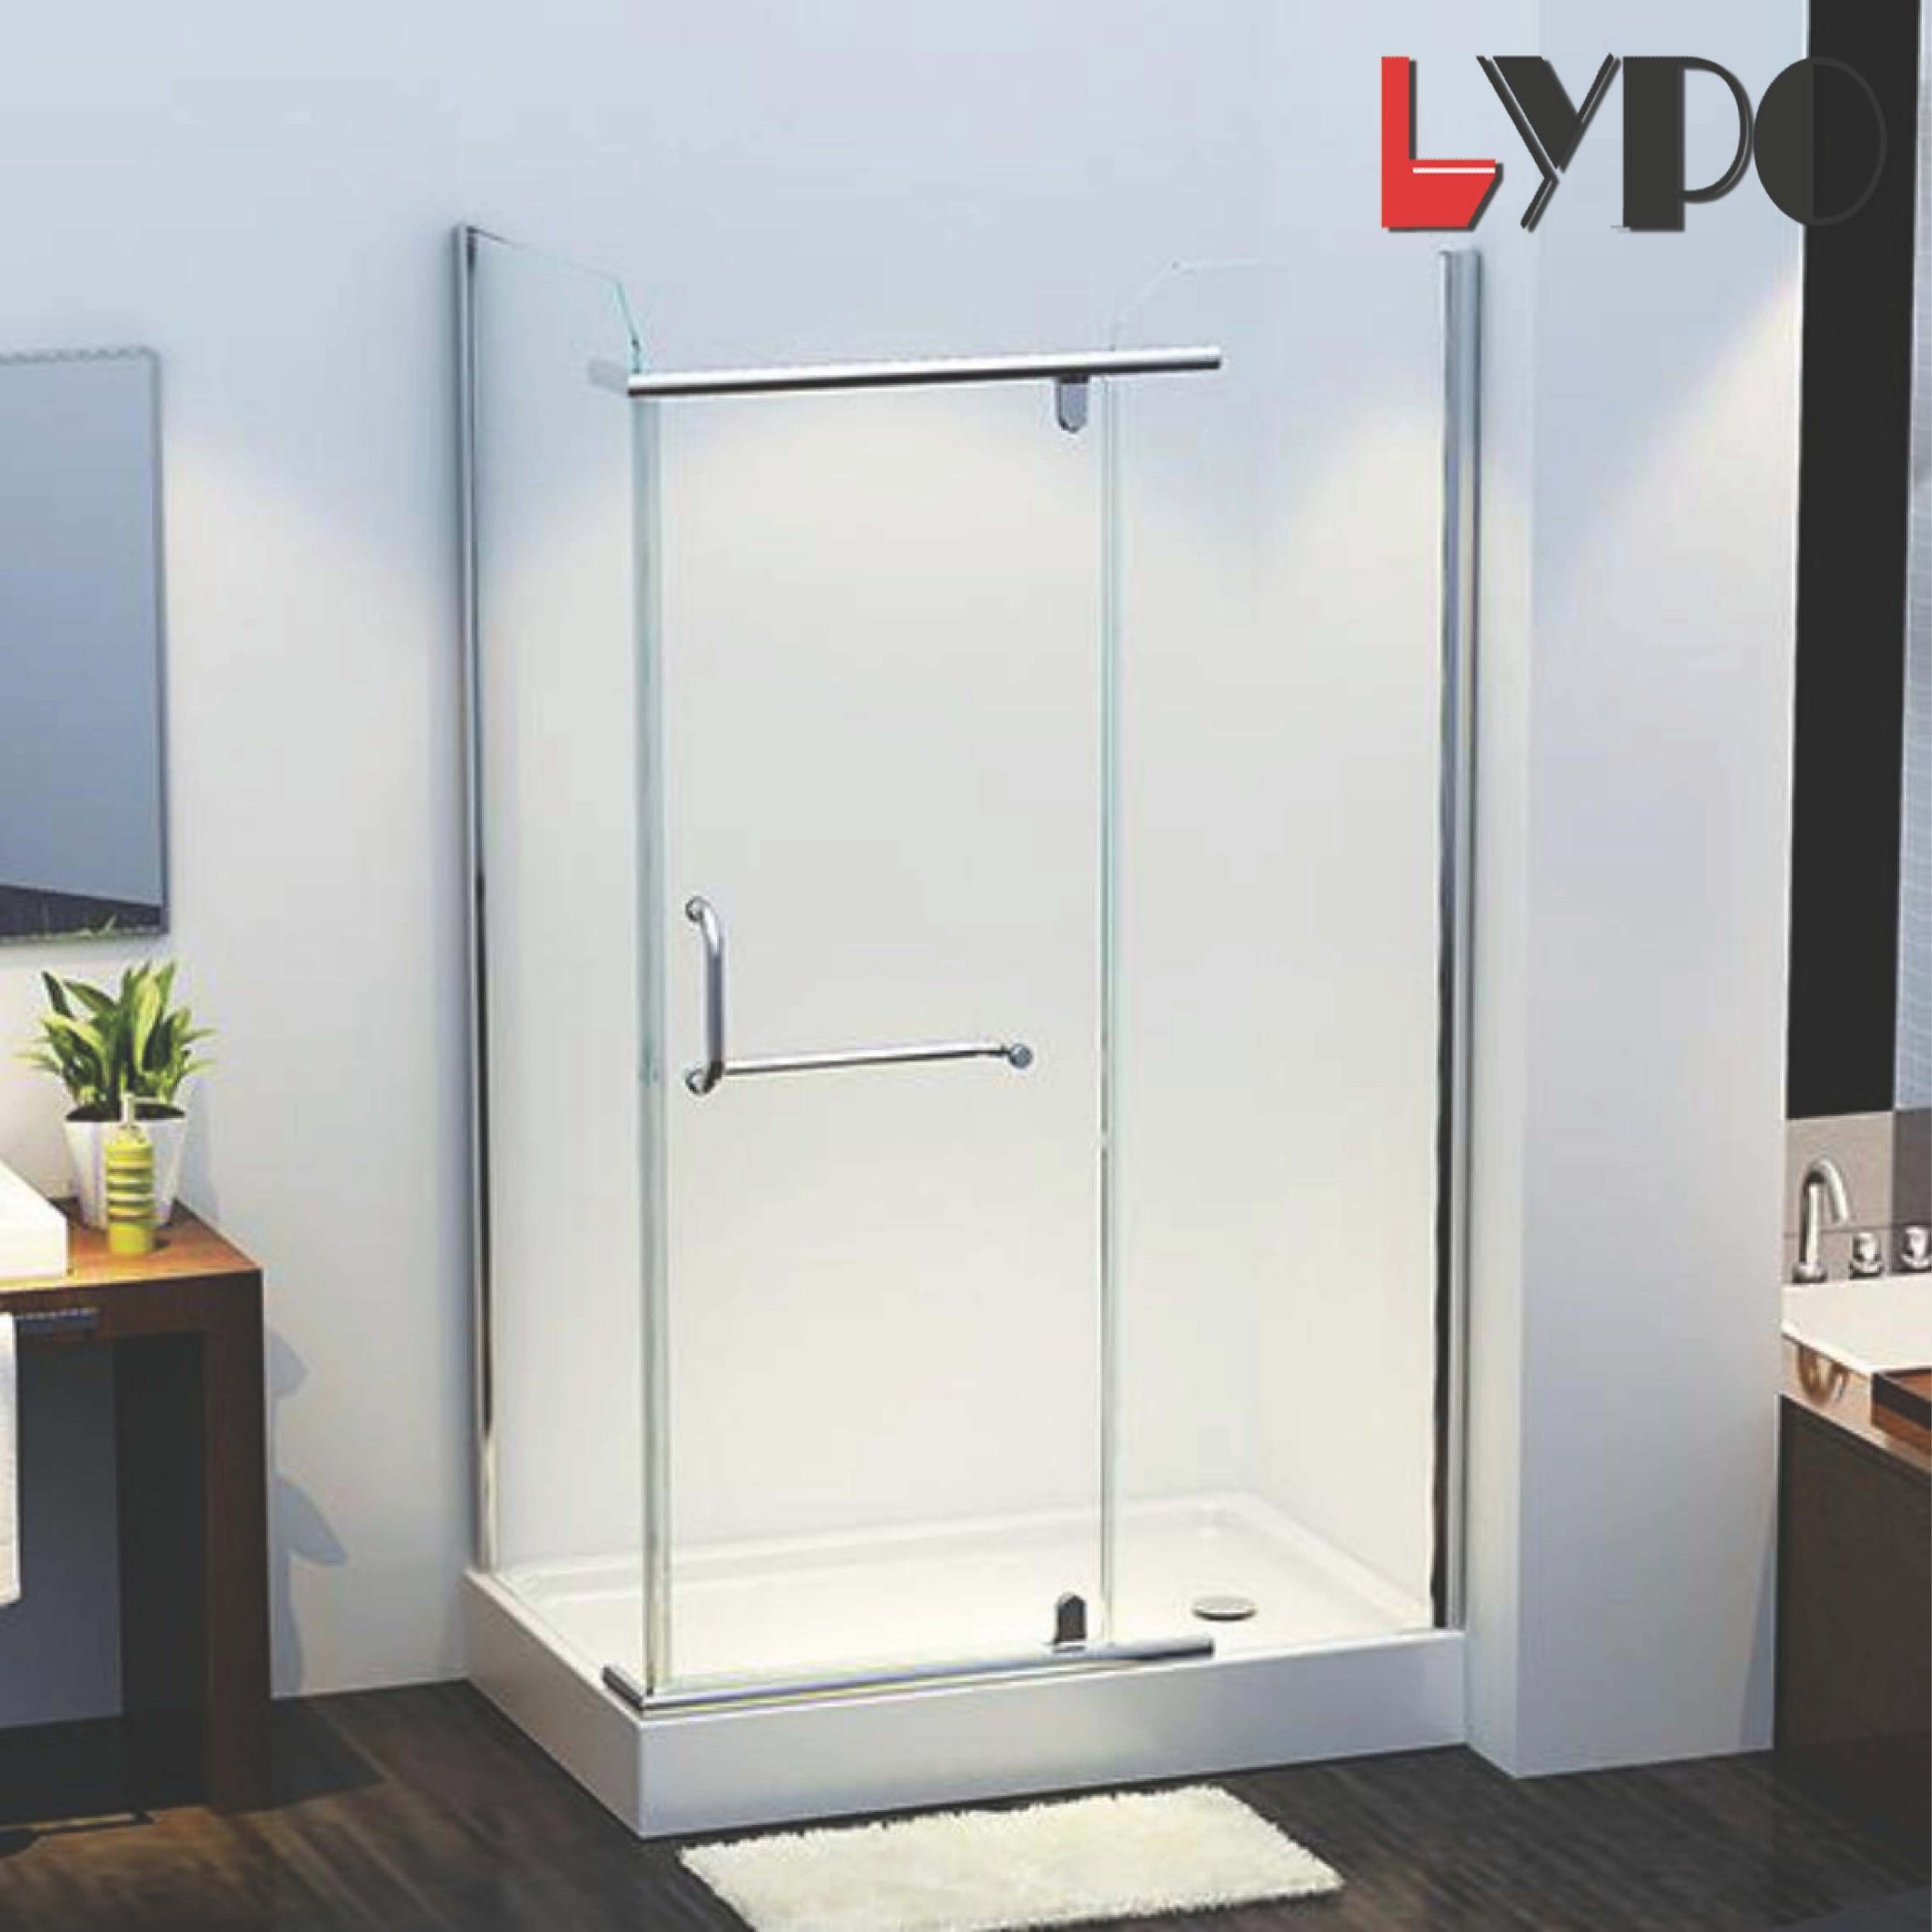 China Simple Economic Tempered Glass Shower Room Enclosure Sanitary Ware